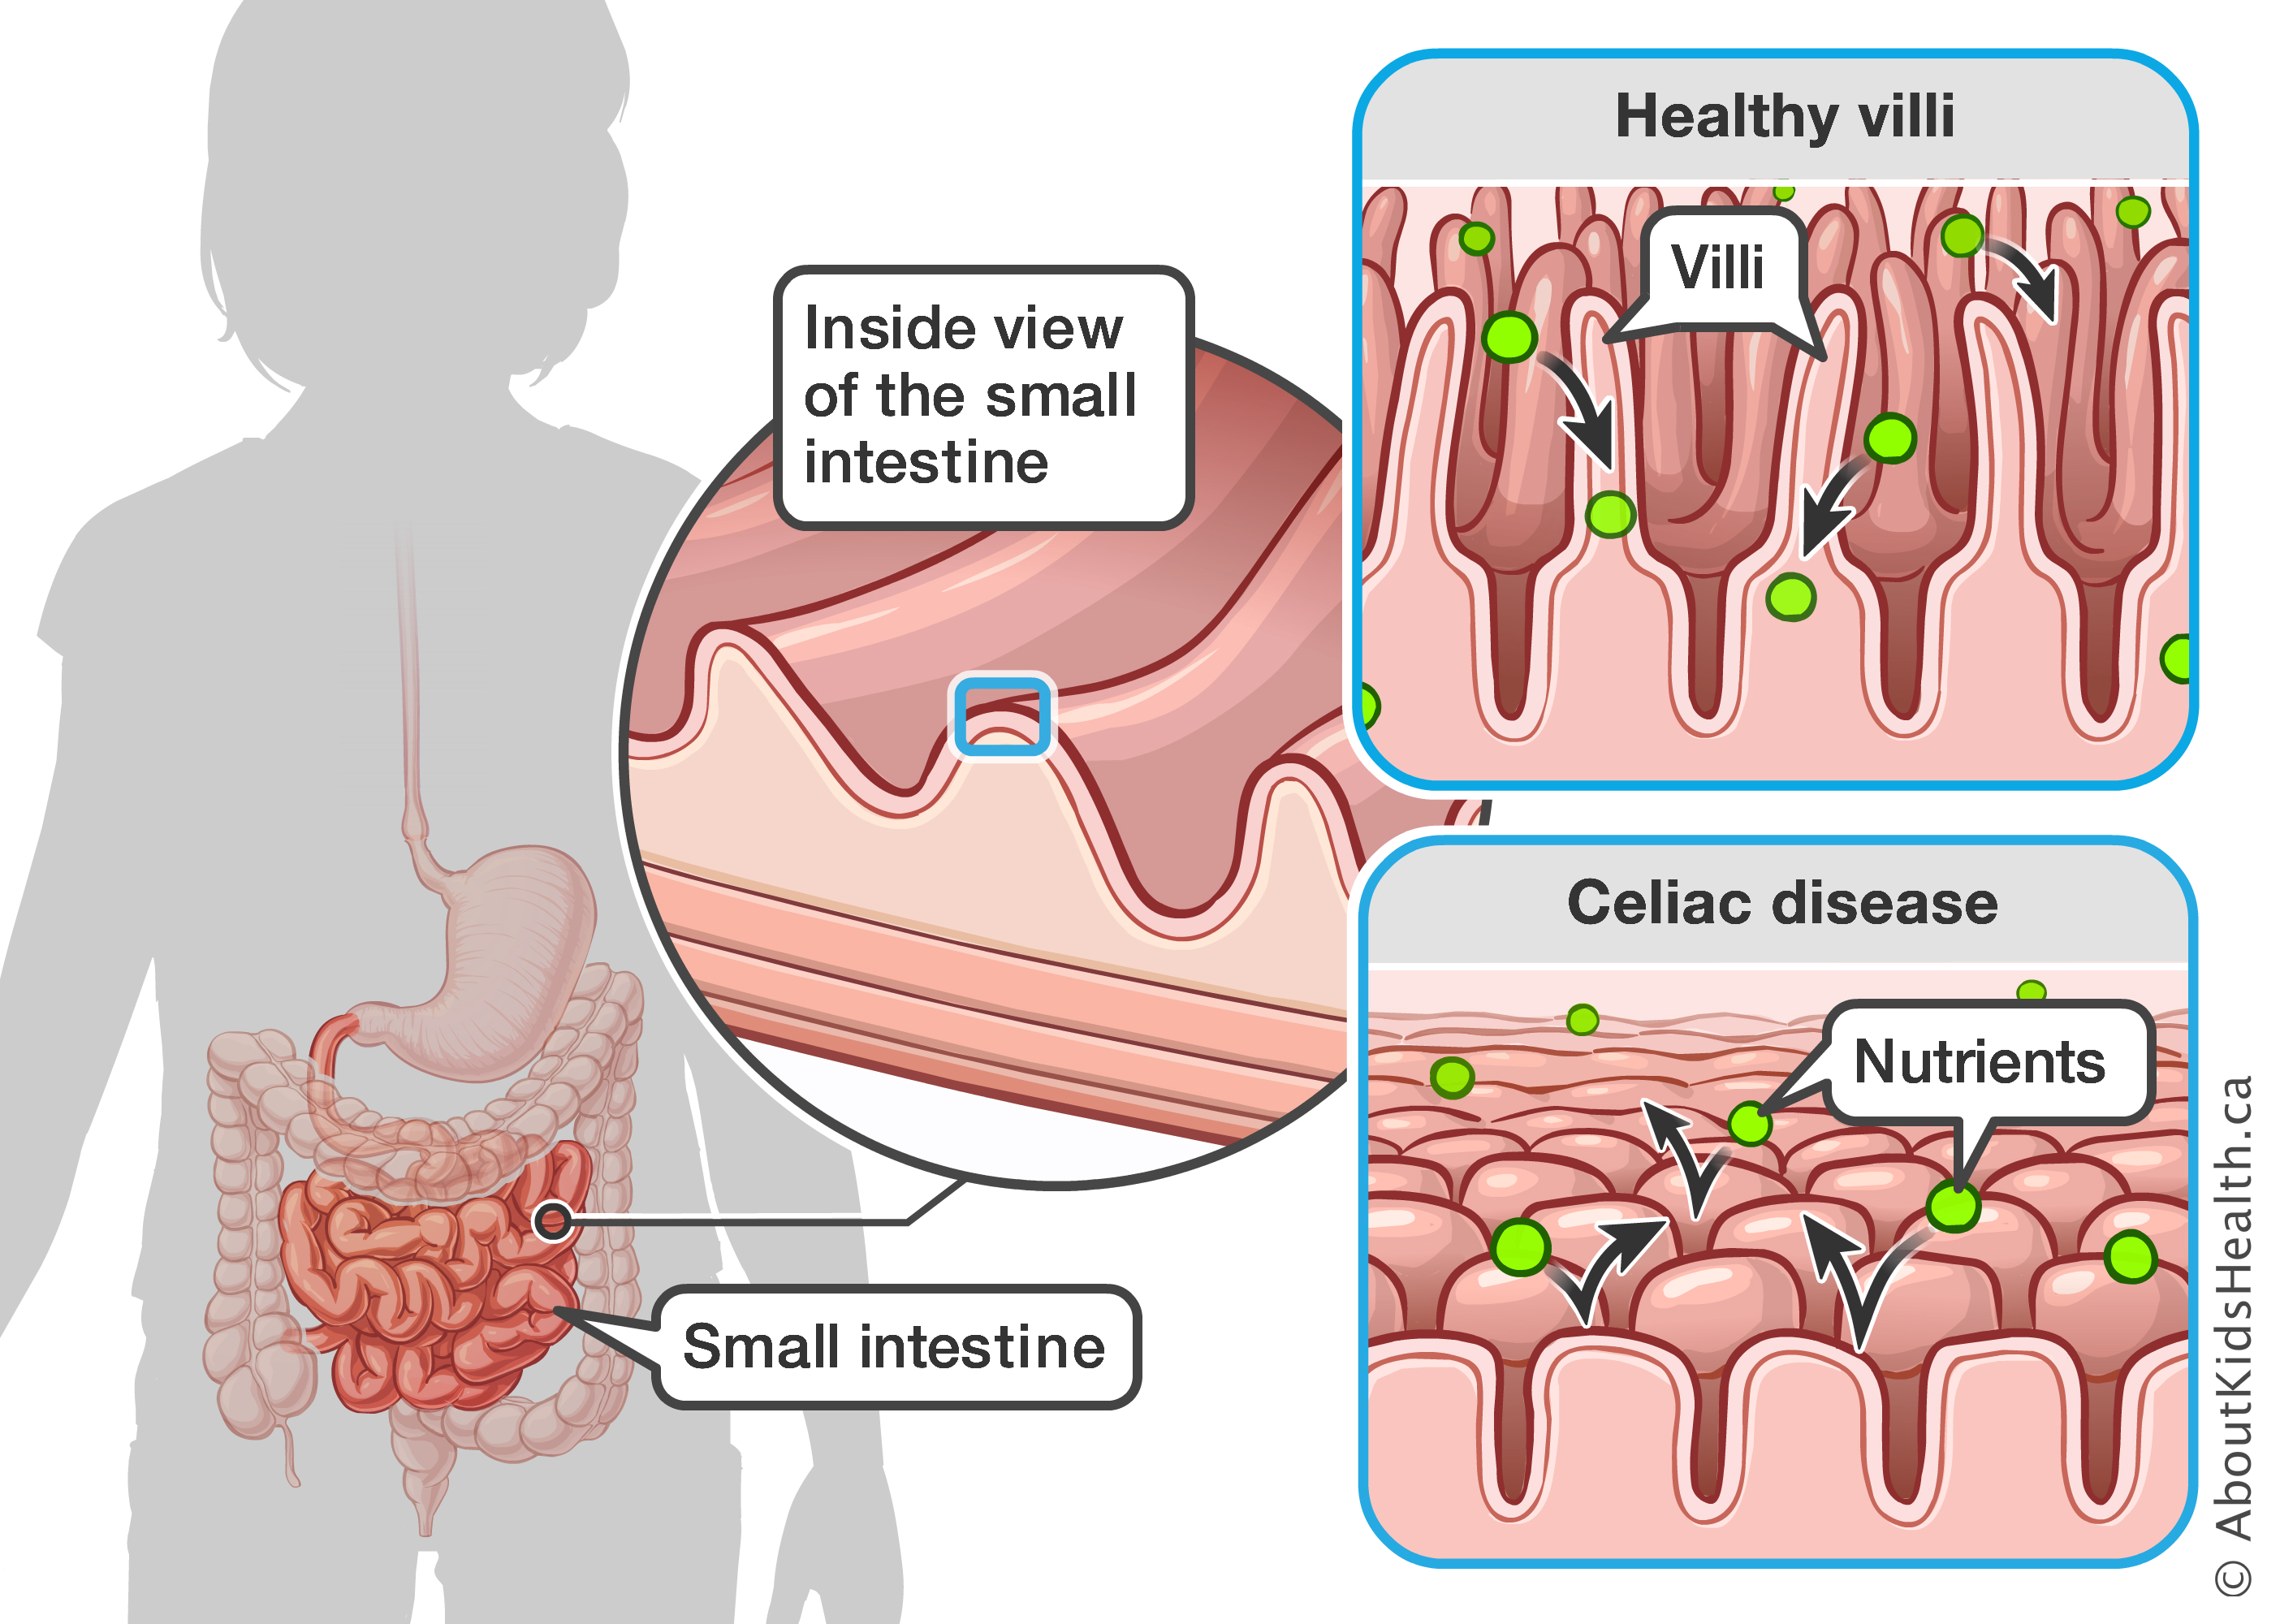 celiac disease celiac disease small intestine biopsy inside view of small intestine, comparing behaviours of nutrients in intestine with healthy villi to